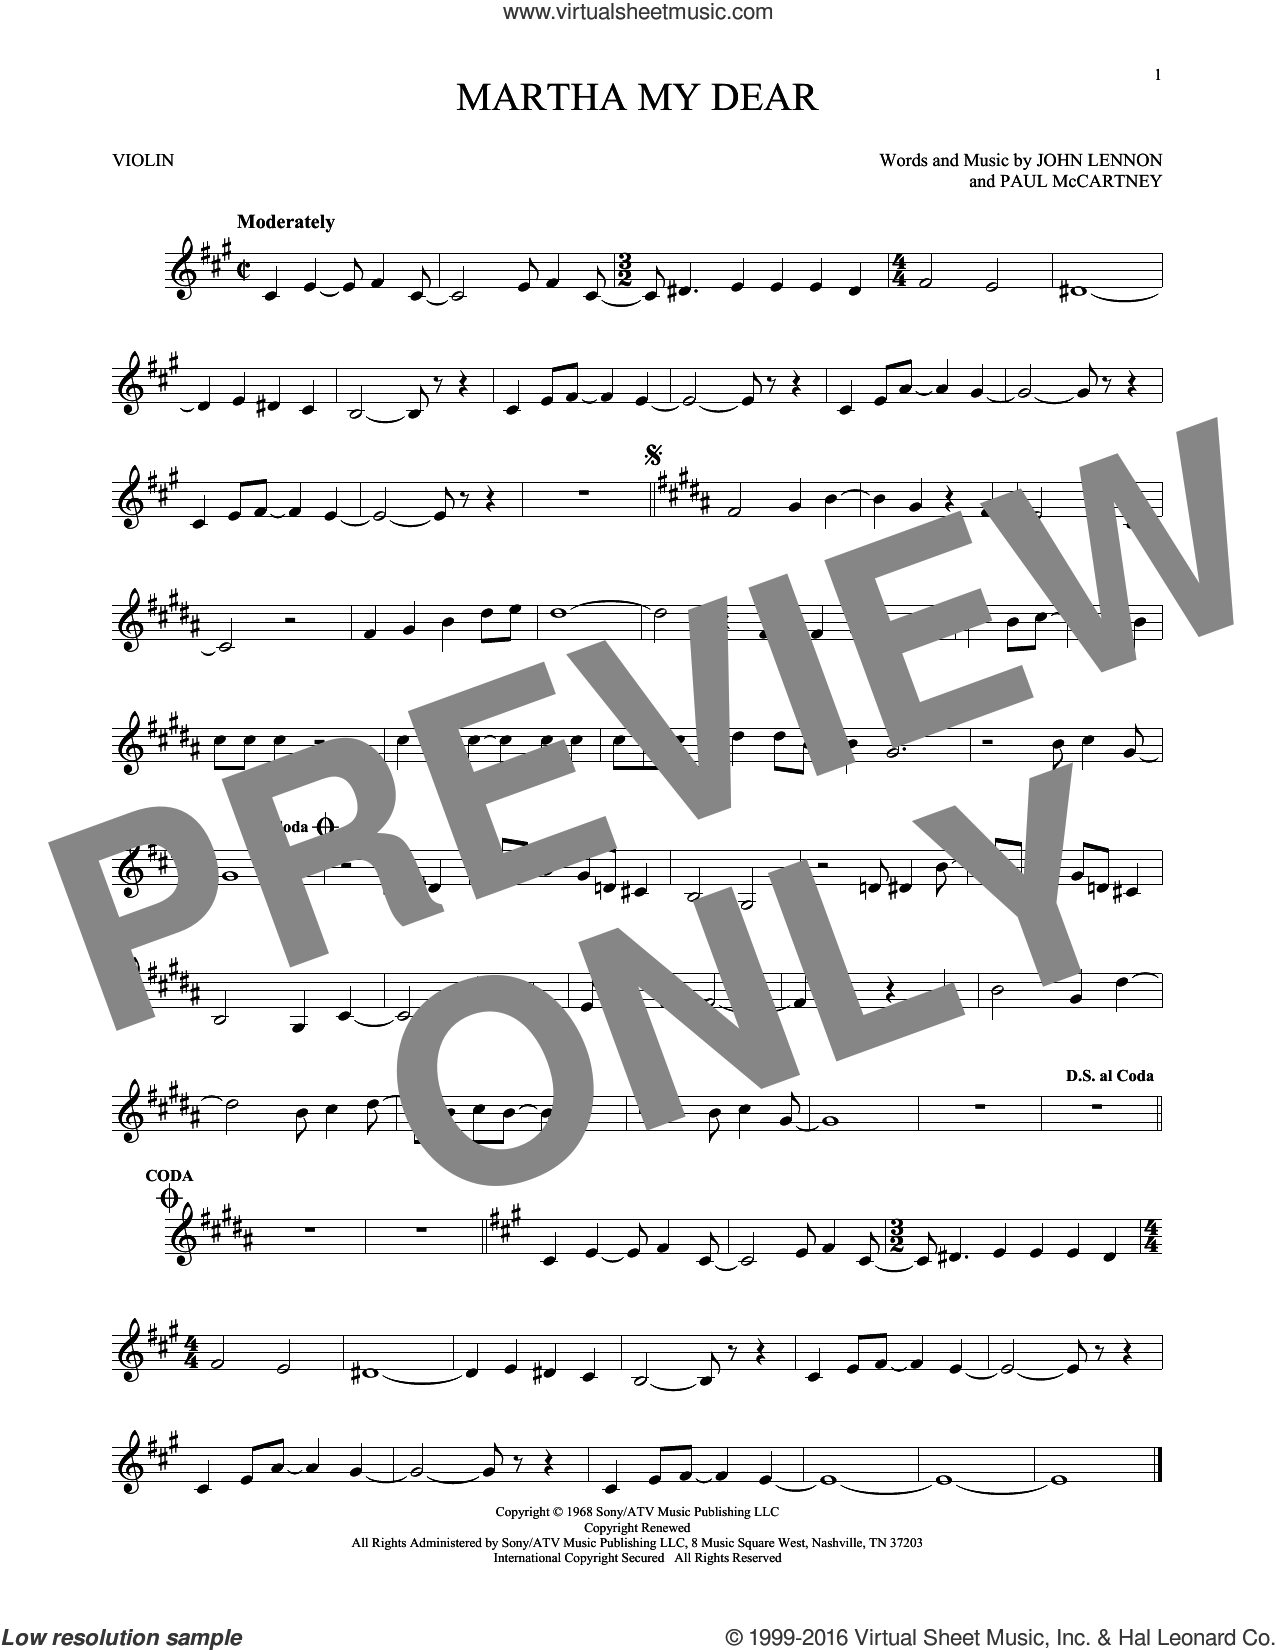 Martha My Dear sheet music for violin solo by The Beatles, John Lennon and Paul McCartney, intermediate skill level